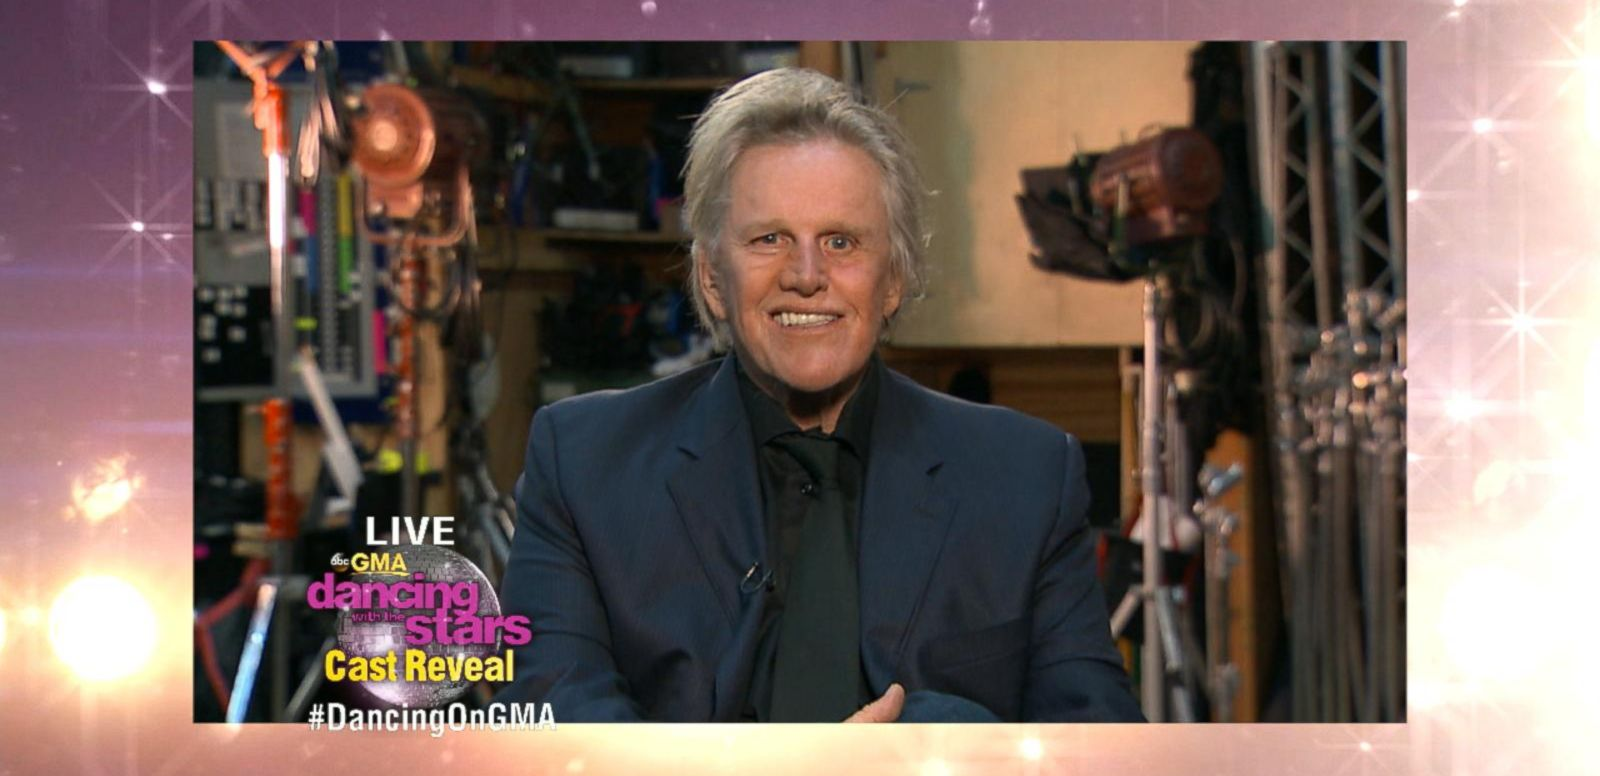 VIDEO: Gary Busey, Andy Grammer Send Messages to 'Dancing' Cast